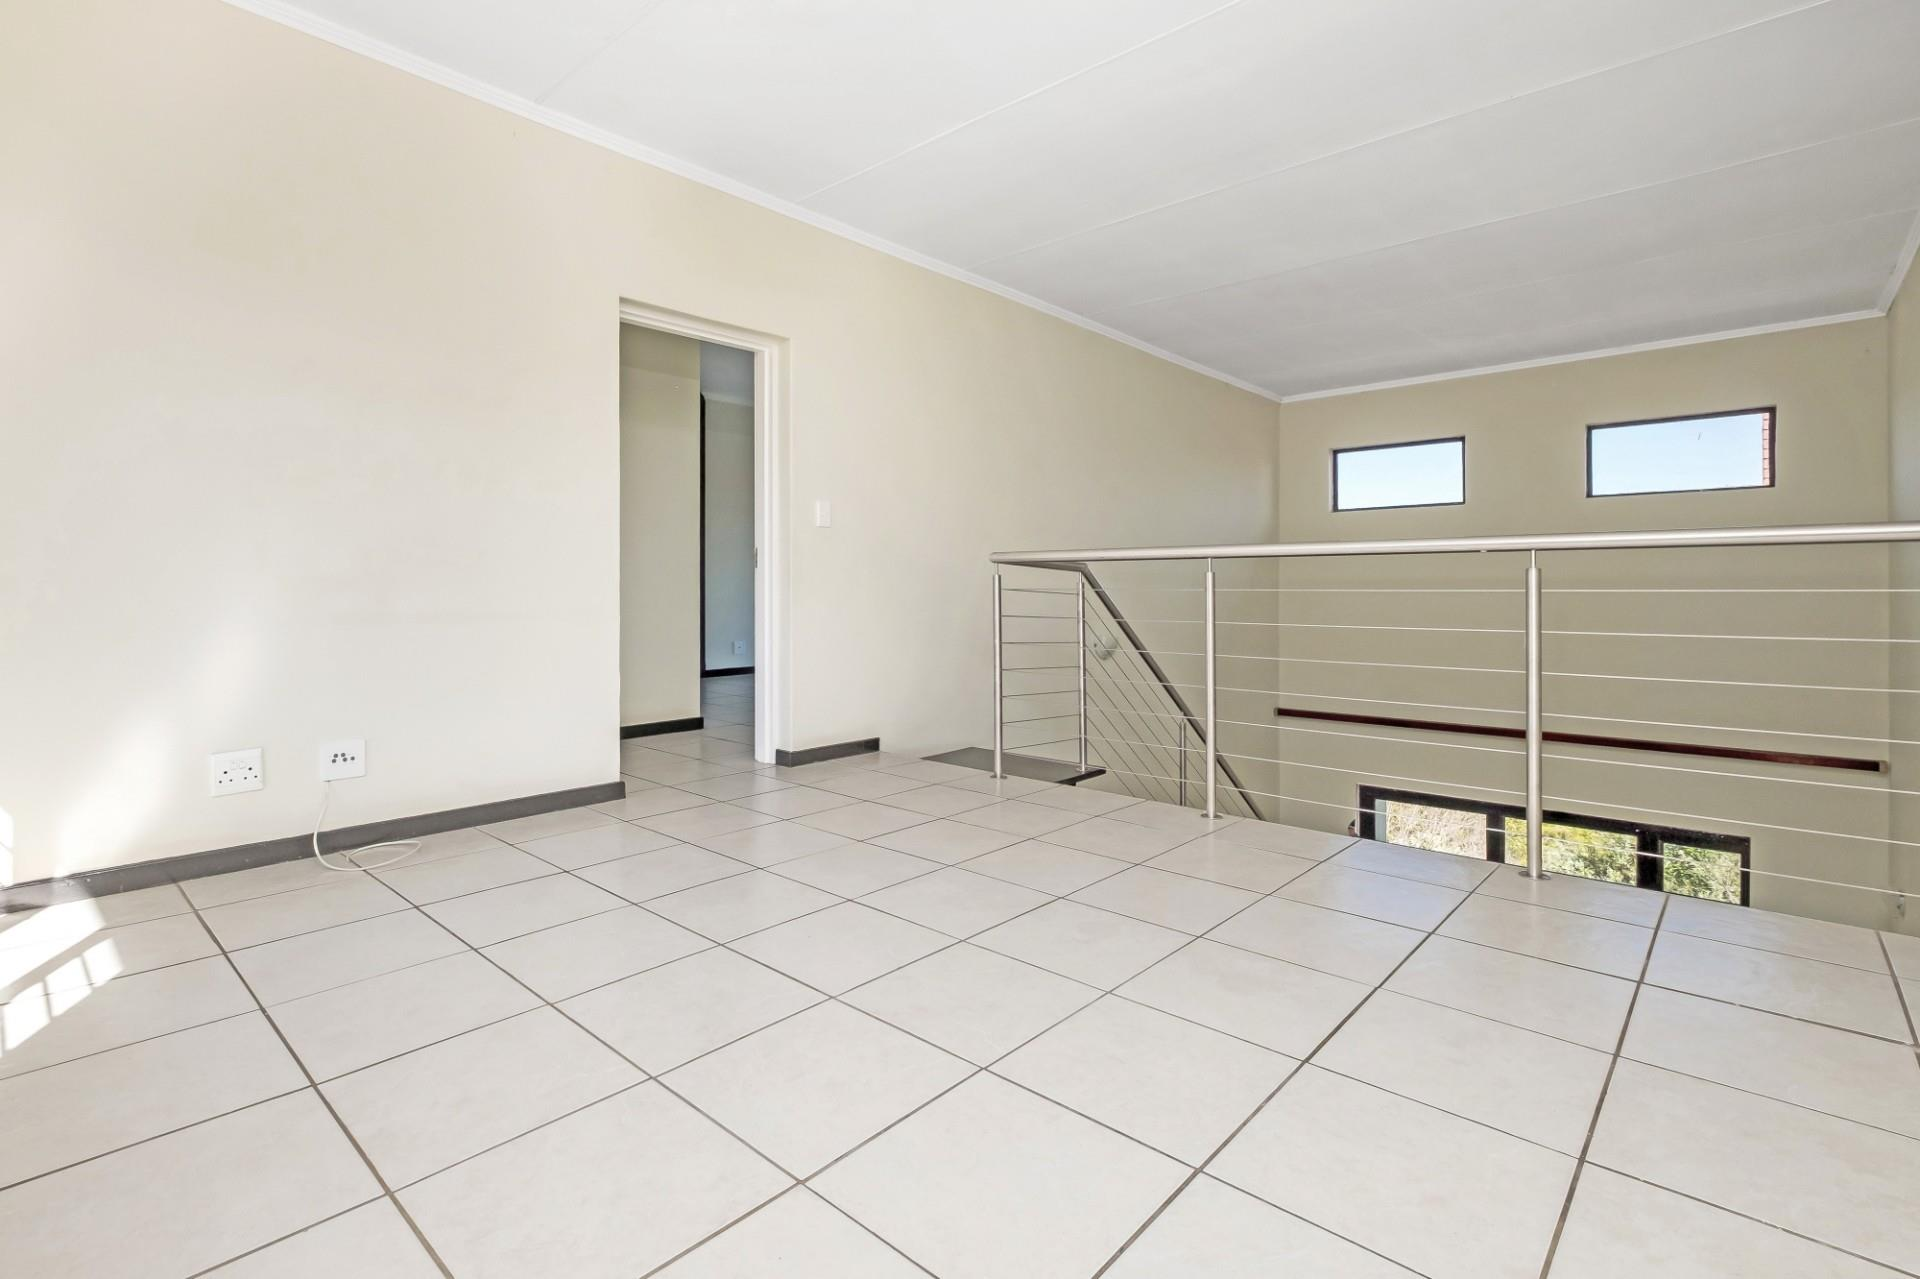 3 Bedroom Apartment / Flat For Sale in Sunninghill